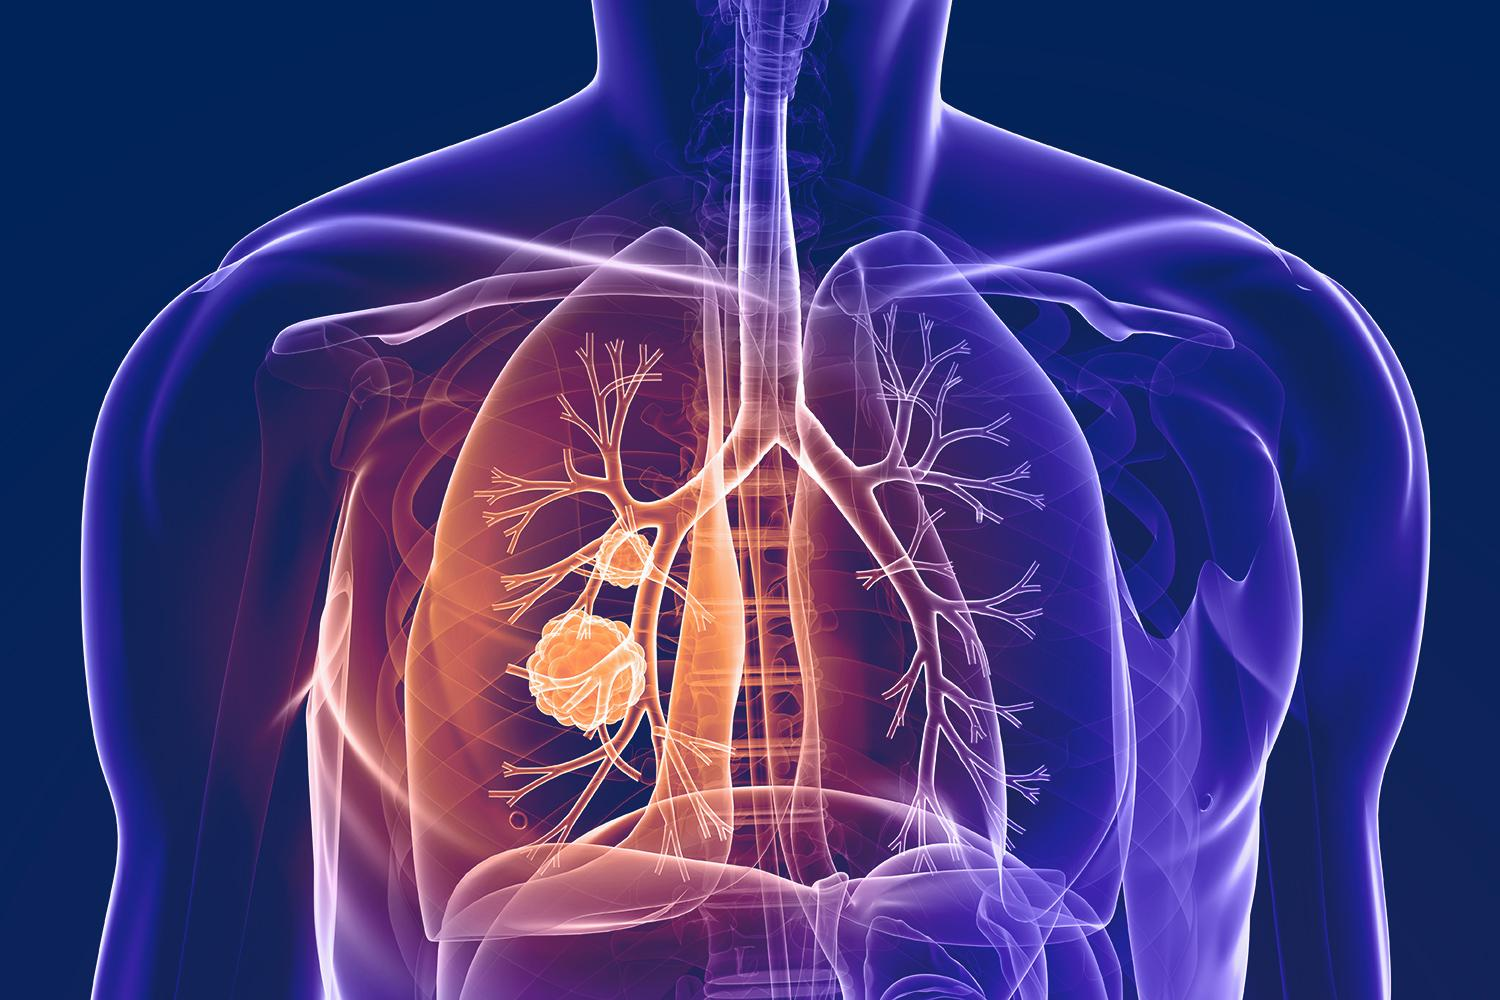 Small cell lung cancer makes up approximately 15 percent of all lung cancer cases.